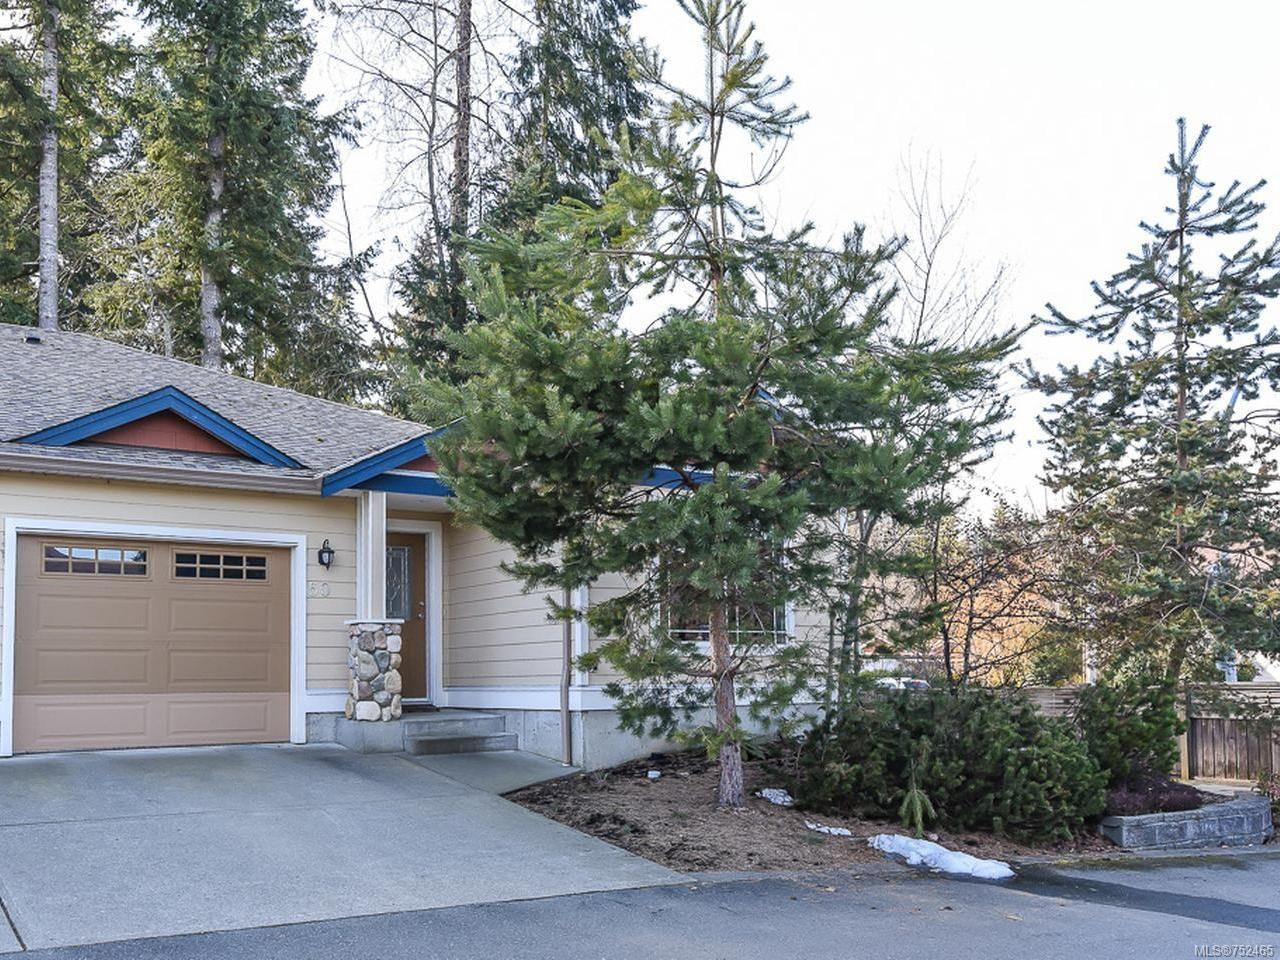 Main Photo: 50 2728 1ST STREET in COURTENAY: CV Courtenay City Row/Townhouse for sale (Comox Valley)  : MLS®# 752465